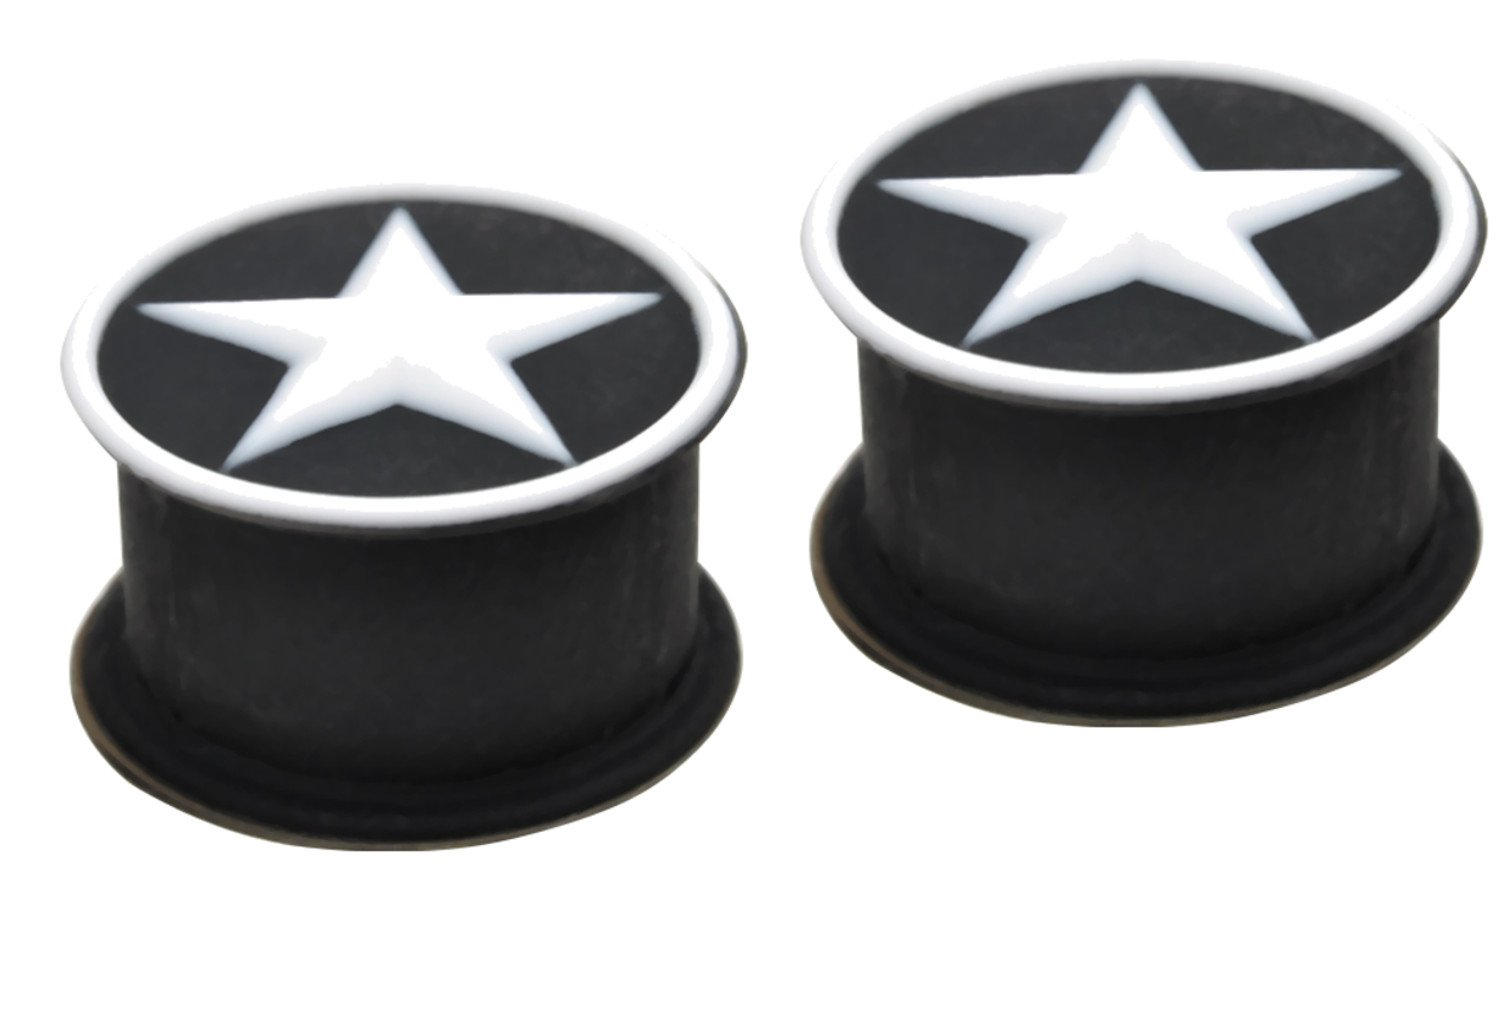 Zaya Body Jewelry PAIR of White Star Black Silicone Tunnels Ear Plugs Gauges rubber 1/2'' 00g 0g 2g (12mm, 10mm, 8mm, 6mm) (9/16'' 14mm)